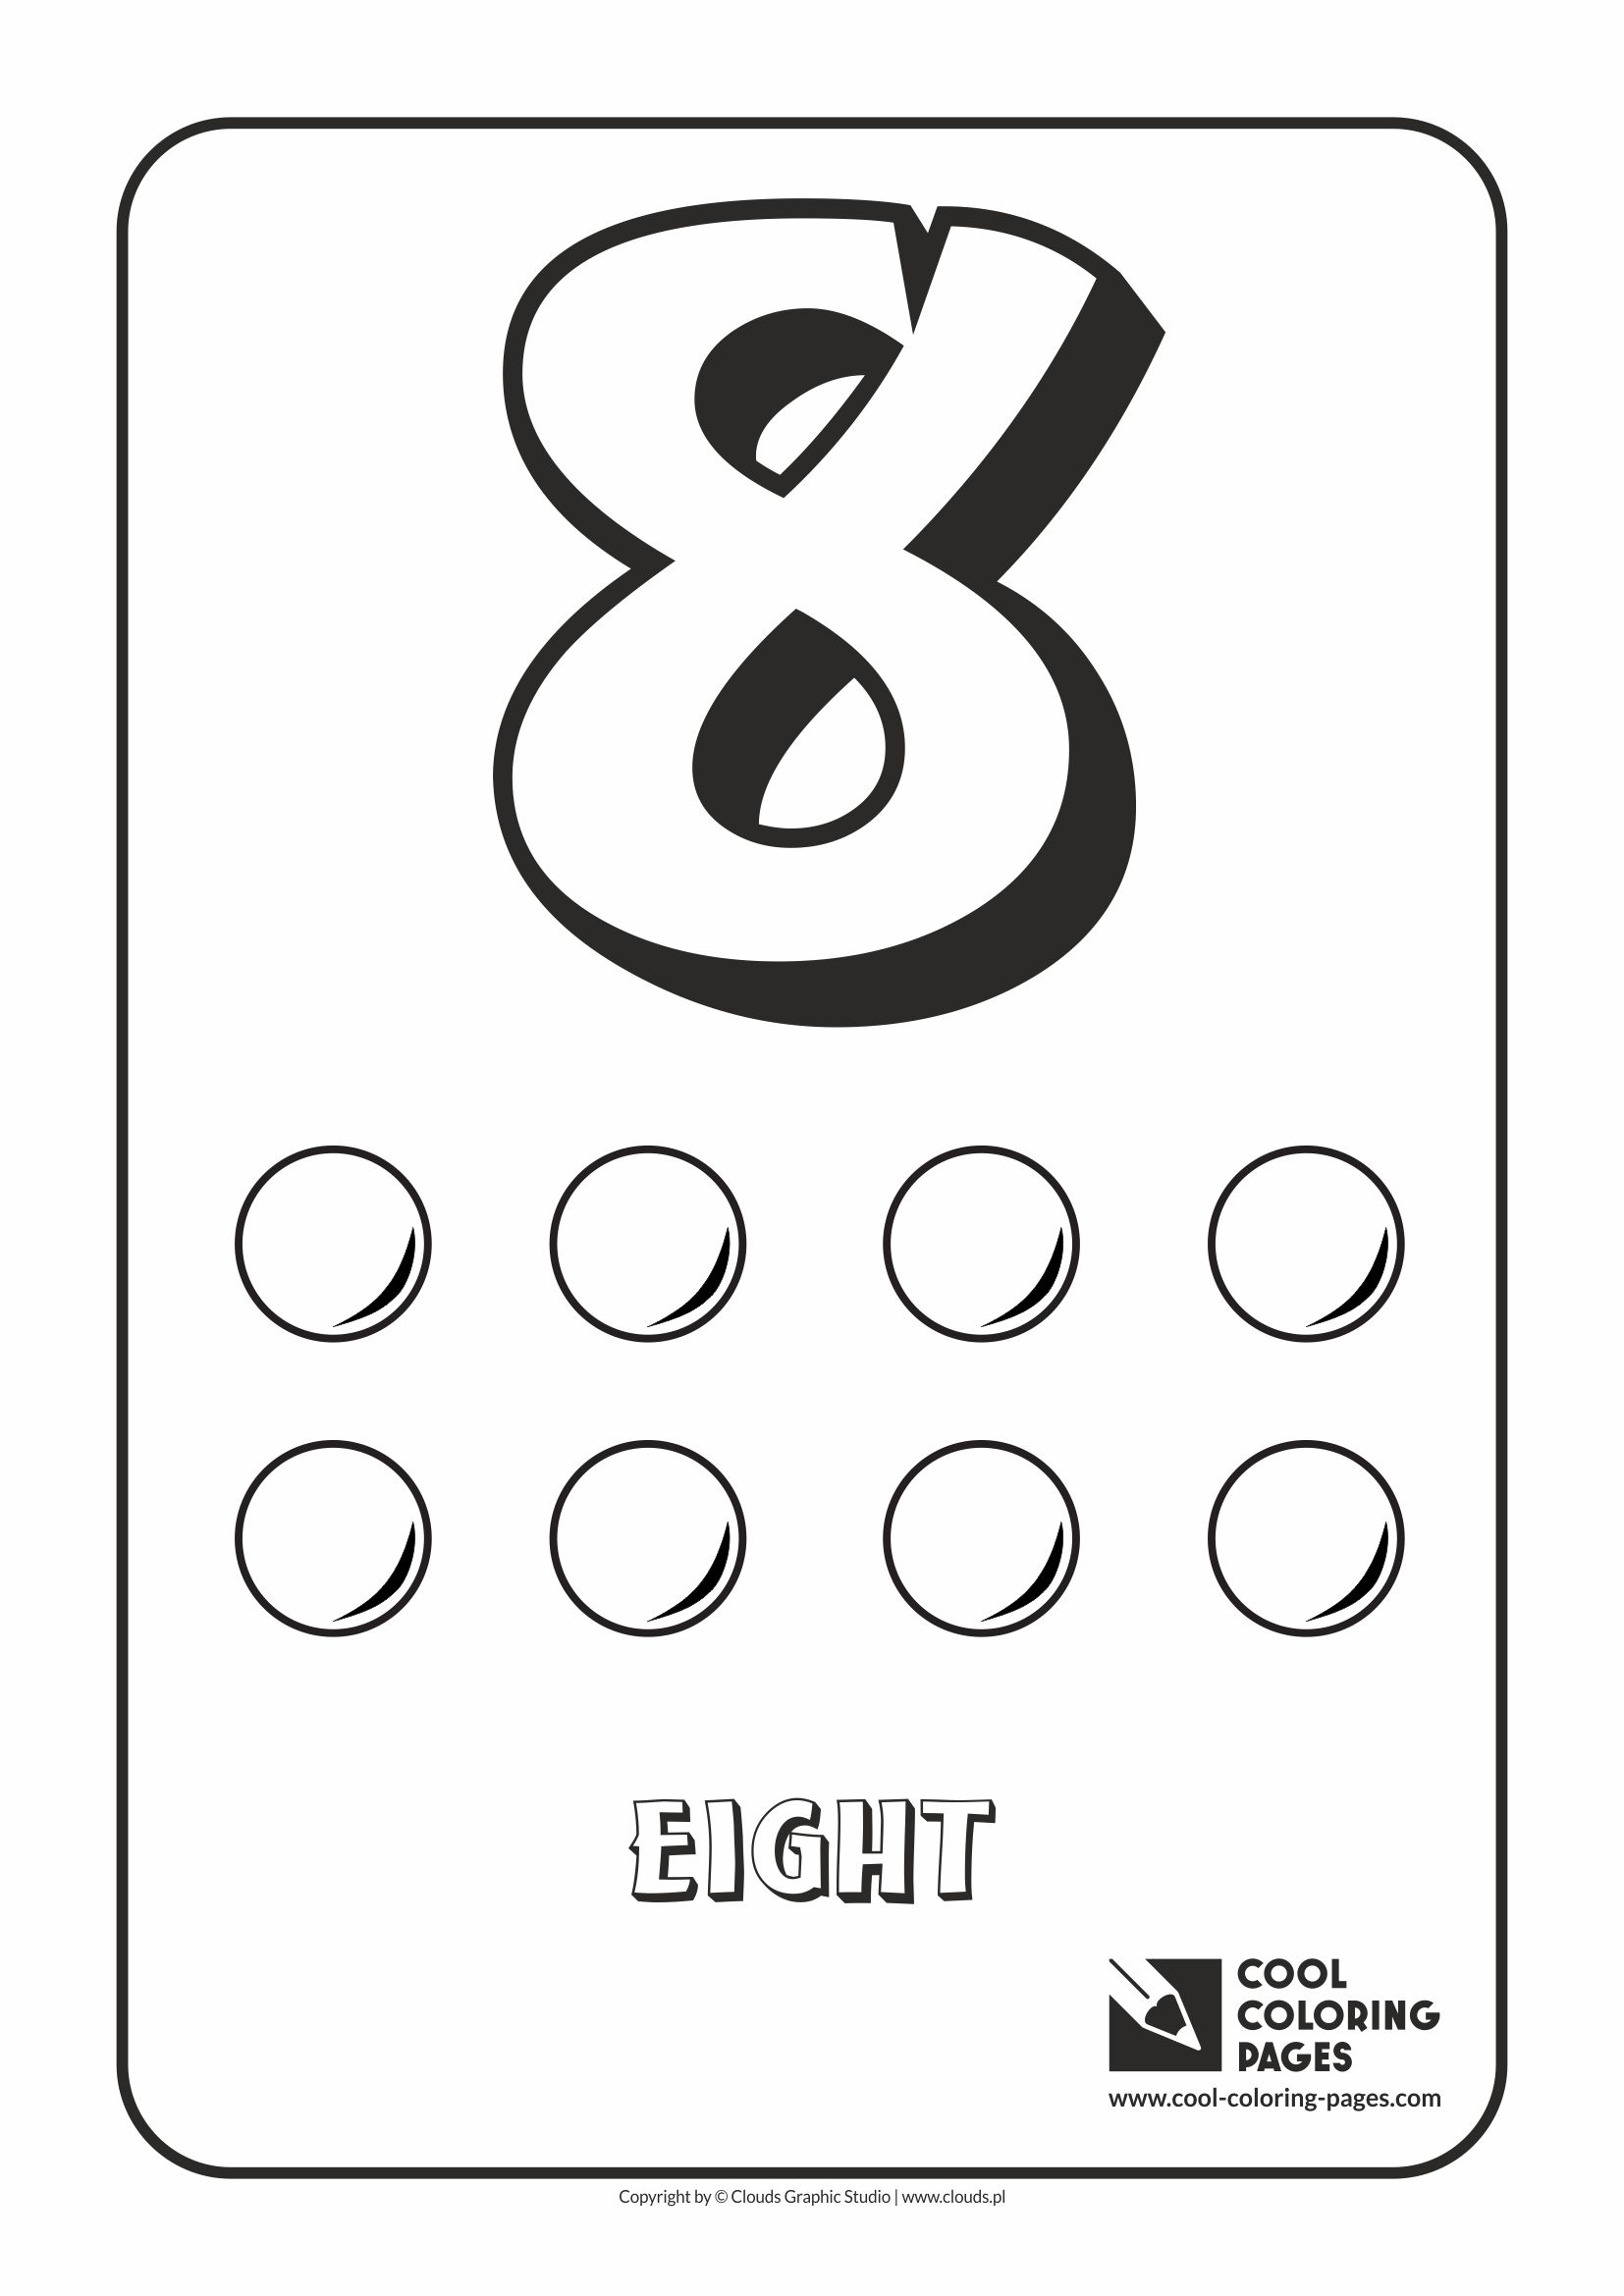 Cool Coloring Pages - Digits / Digit 8 / Coloring page with digit 8